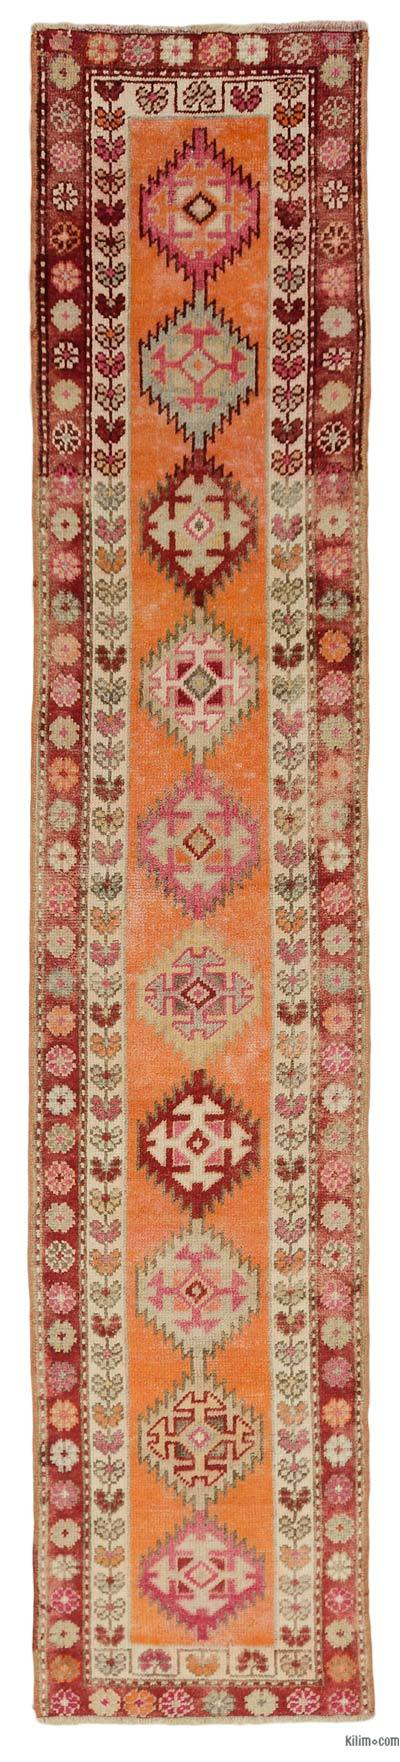 "Vintage Turkish Runner Rug - 2' 7"" x 12' 11"" (31 in. x 155 in.)"